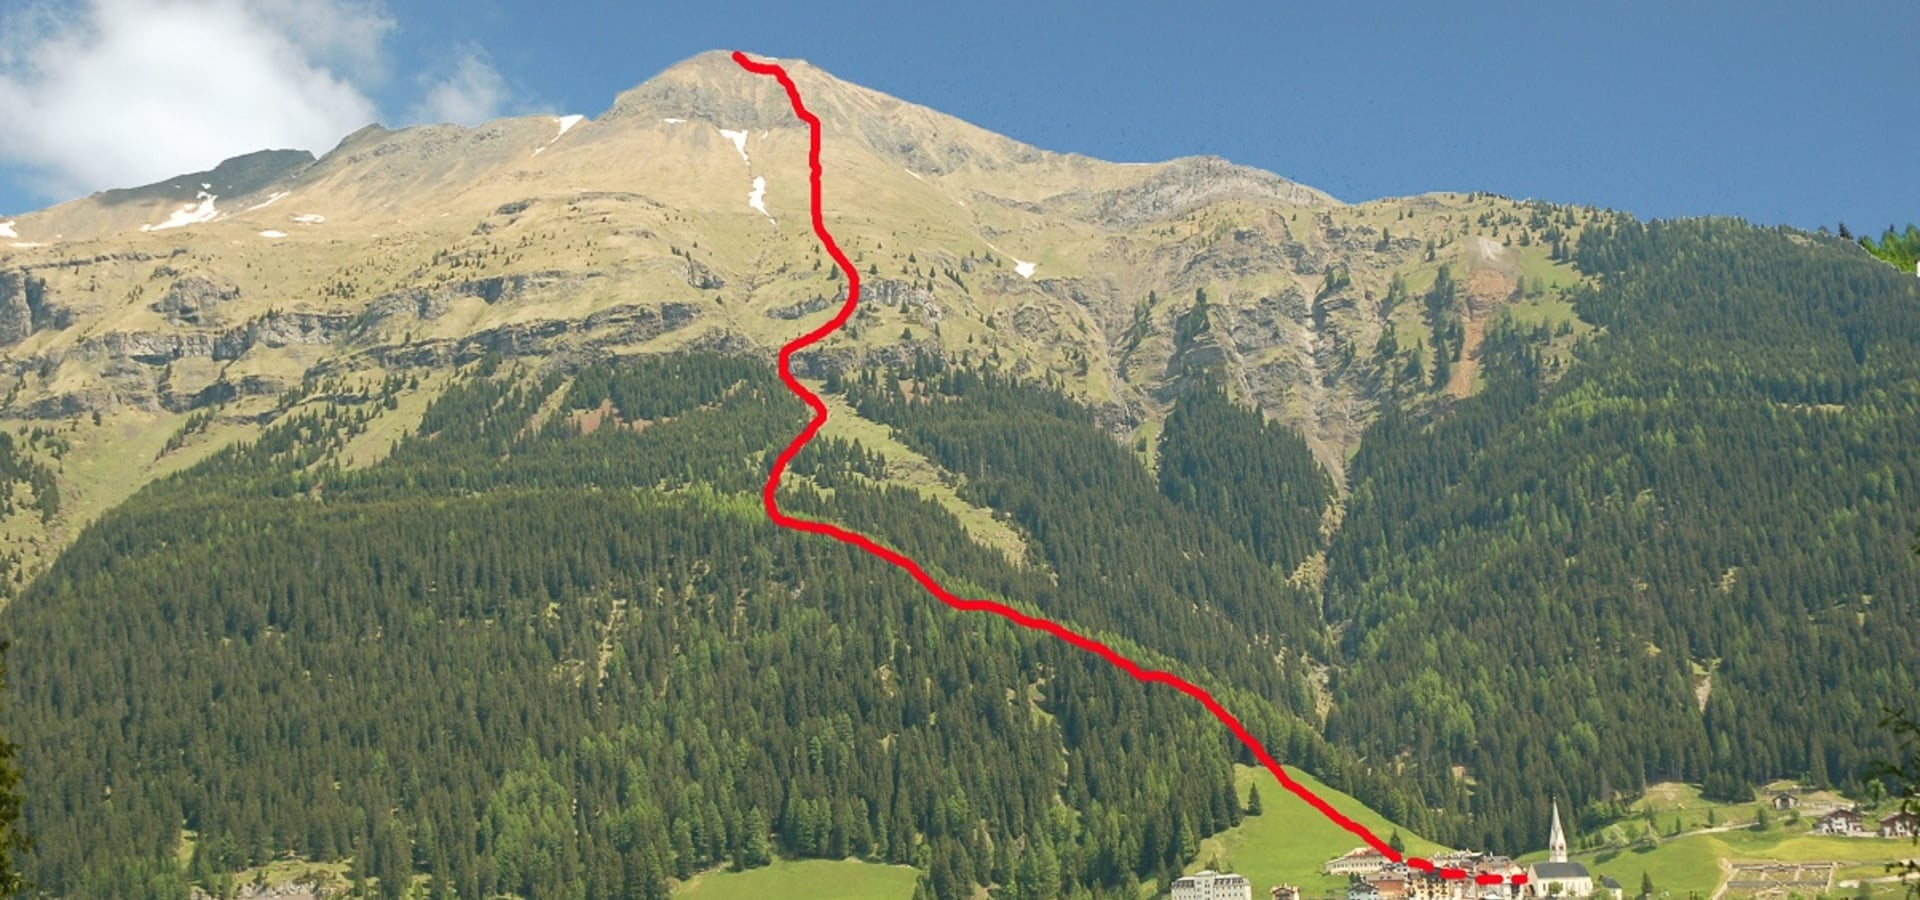 22/07/2018 Verical Col di Lana